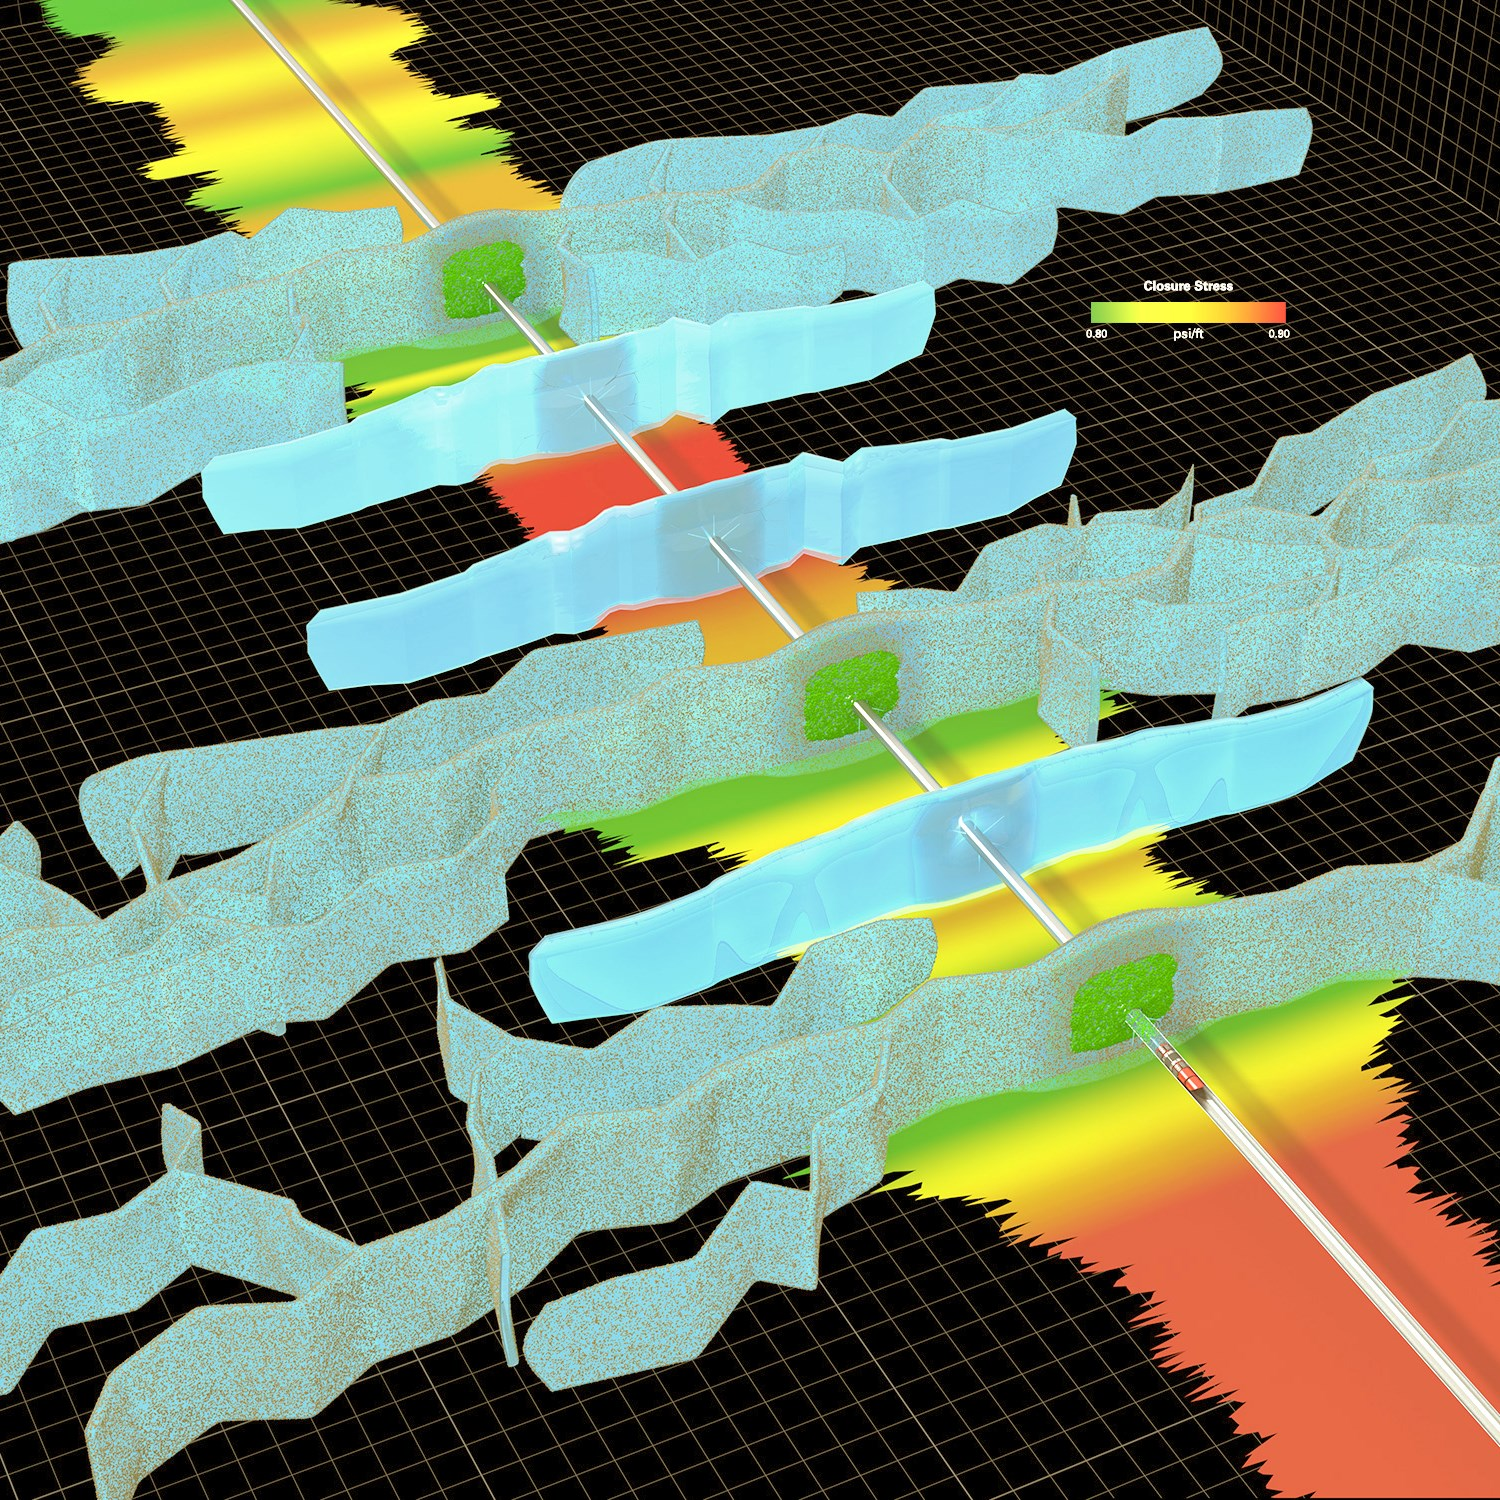 Thi image from energy services company Halliburton shows a shale well in cross section. The shaded blue areas are old fracks, plugged by the company's biodegradable material that seals off existing pathways. That lets pressure build in new areas, creating other pathways for gas to travel to the wellbore.